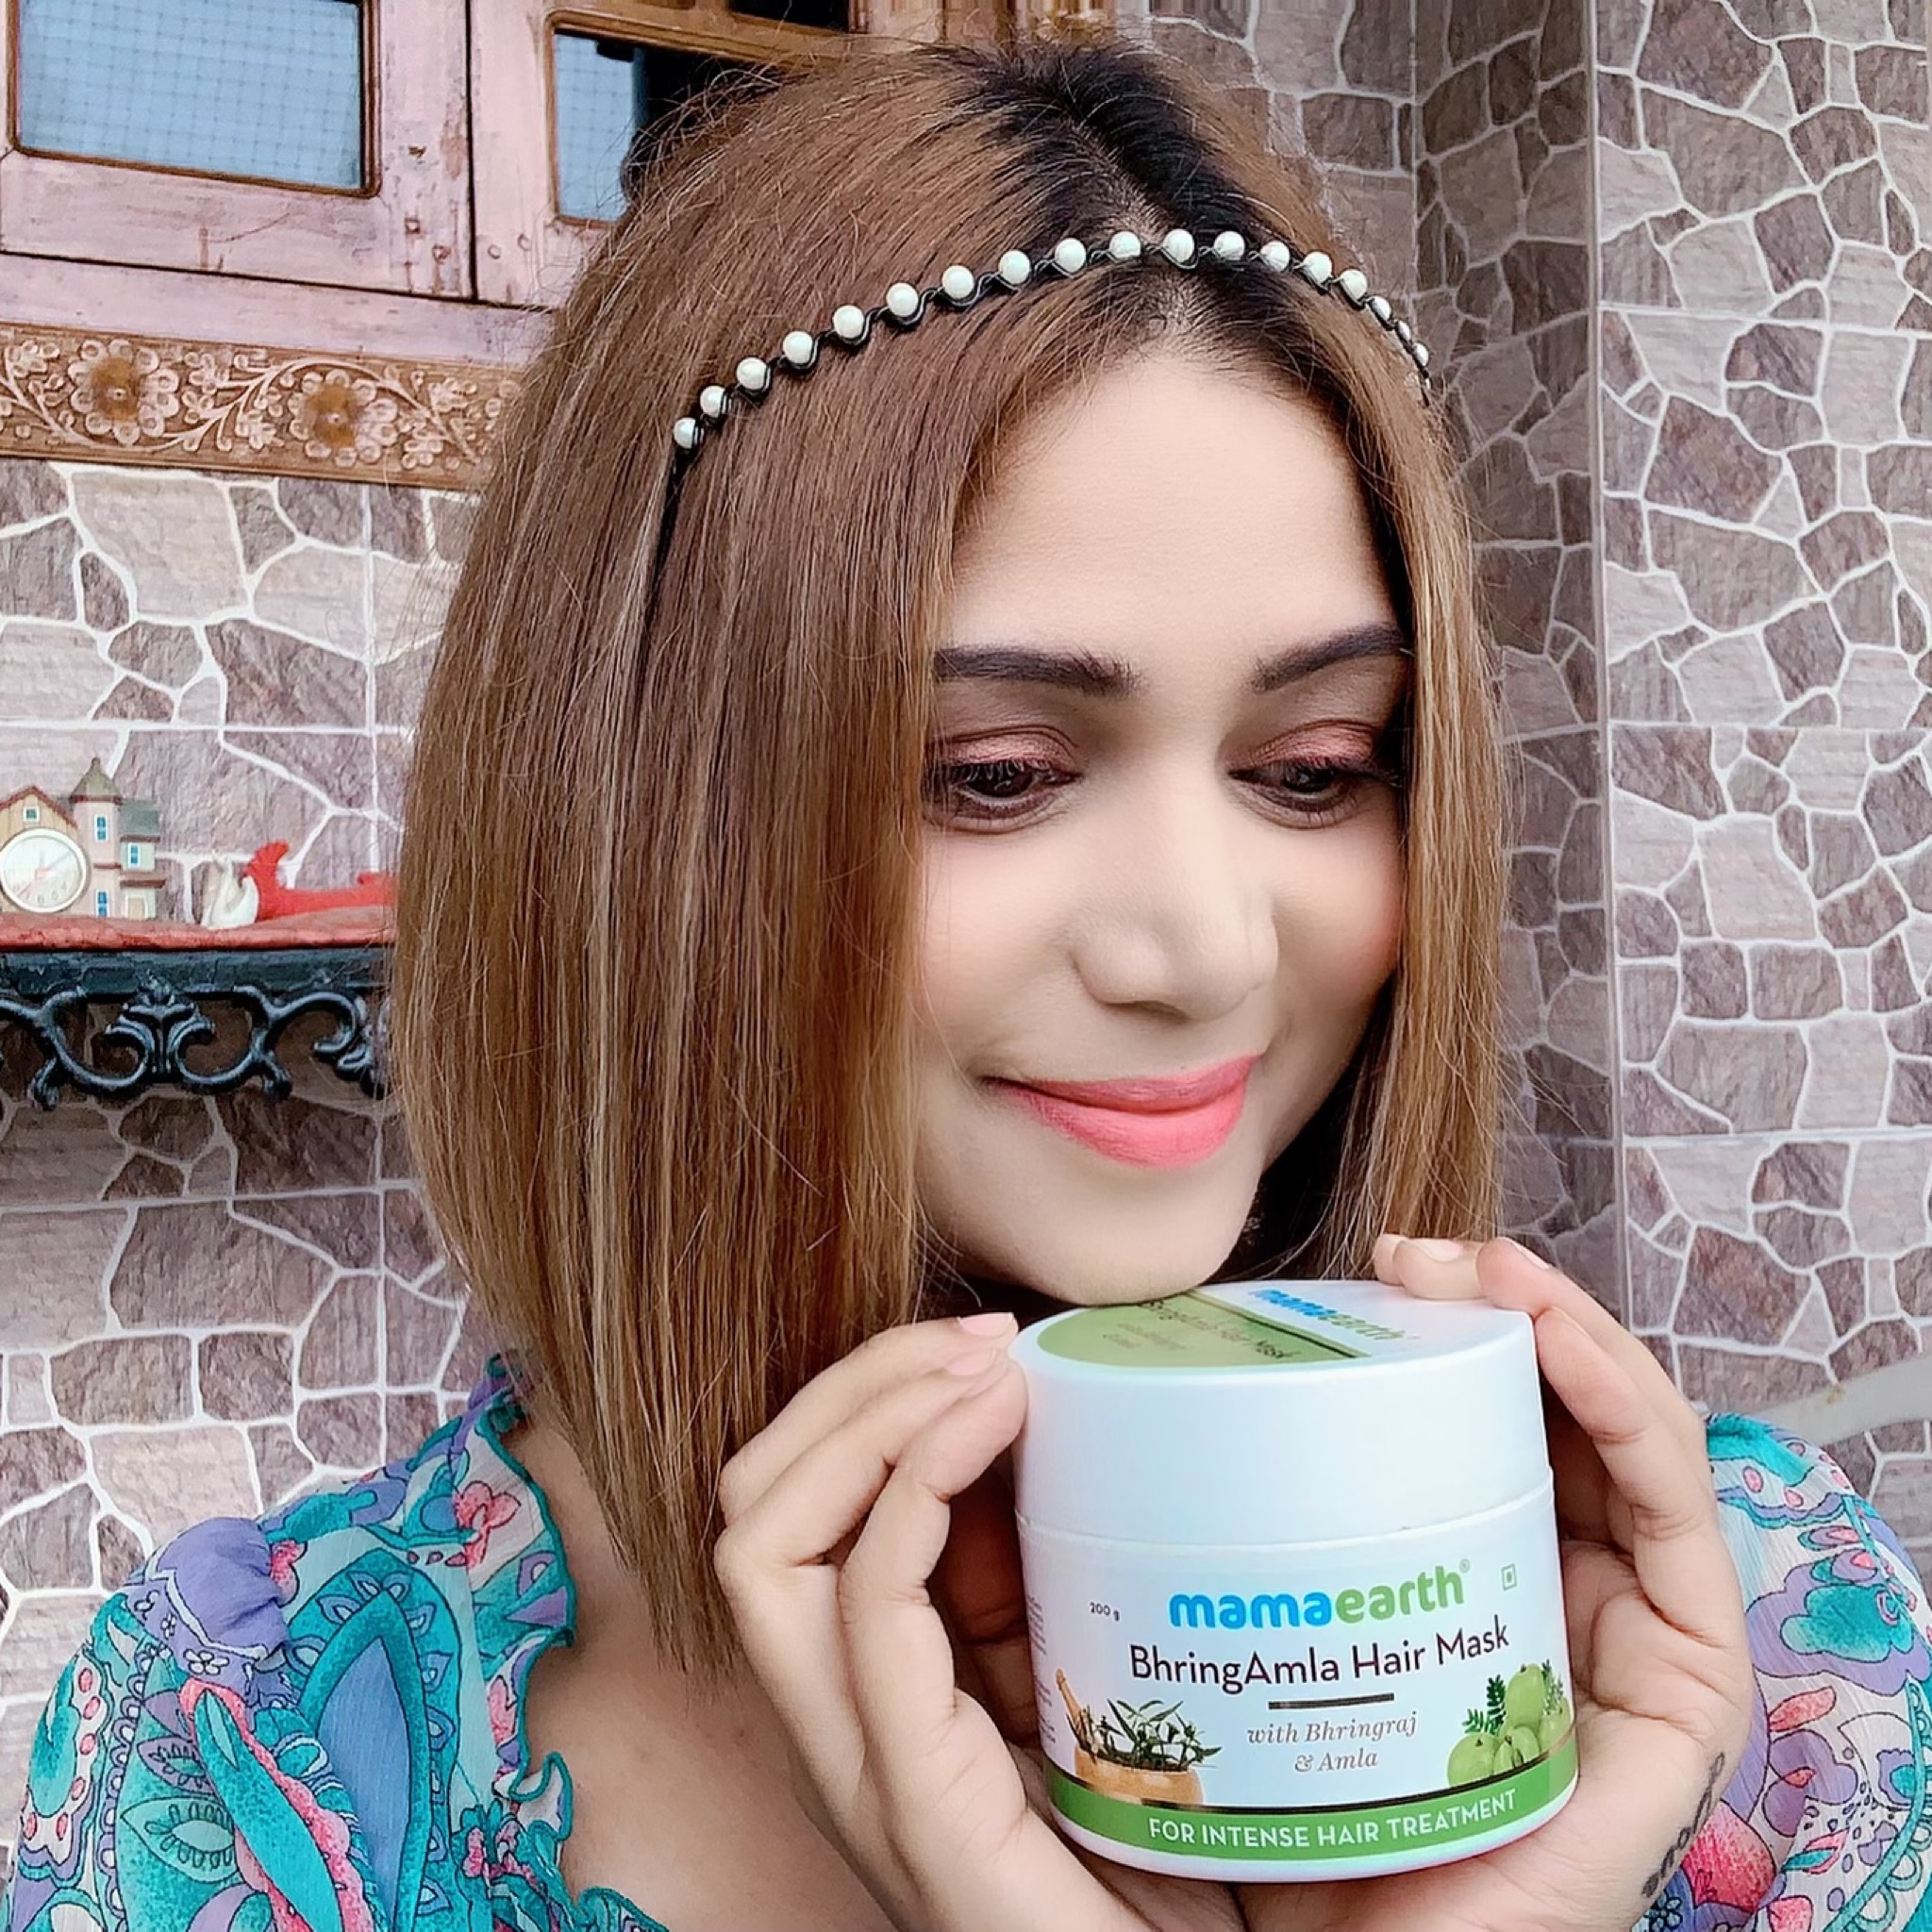 Mamaearth BhringAmla Hair Mask-BEST HAIR MASK WITH AMAZING RESULTS-By mahekhanitha-3